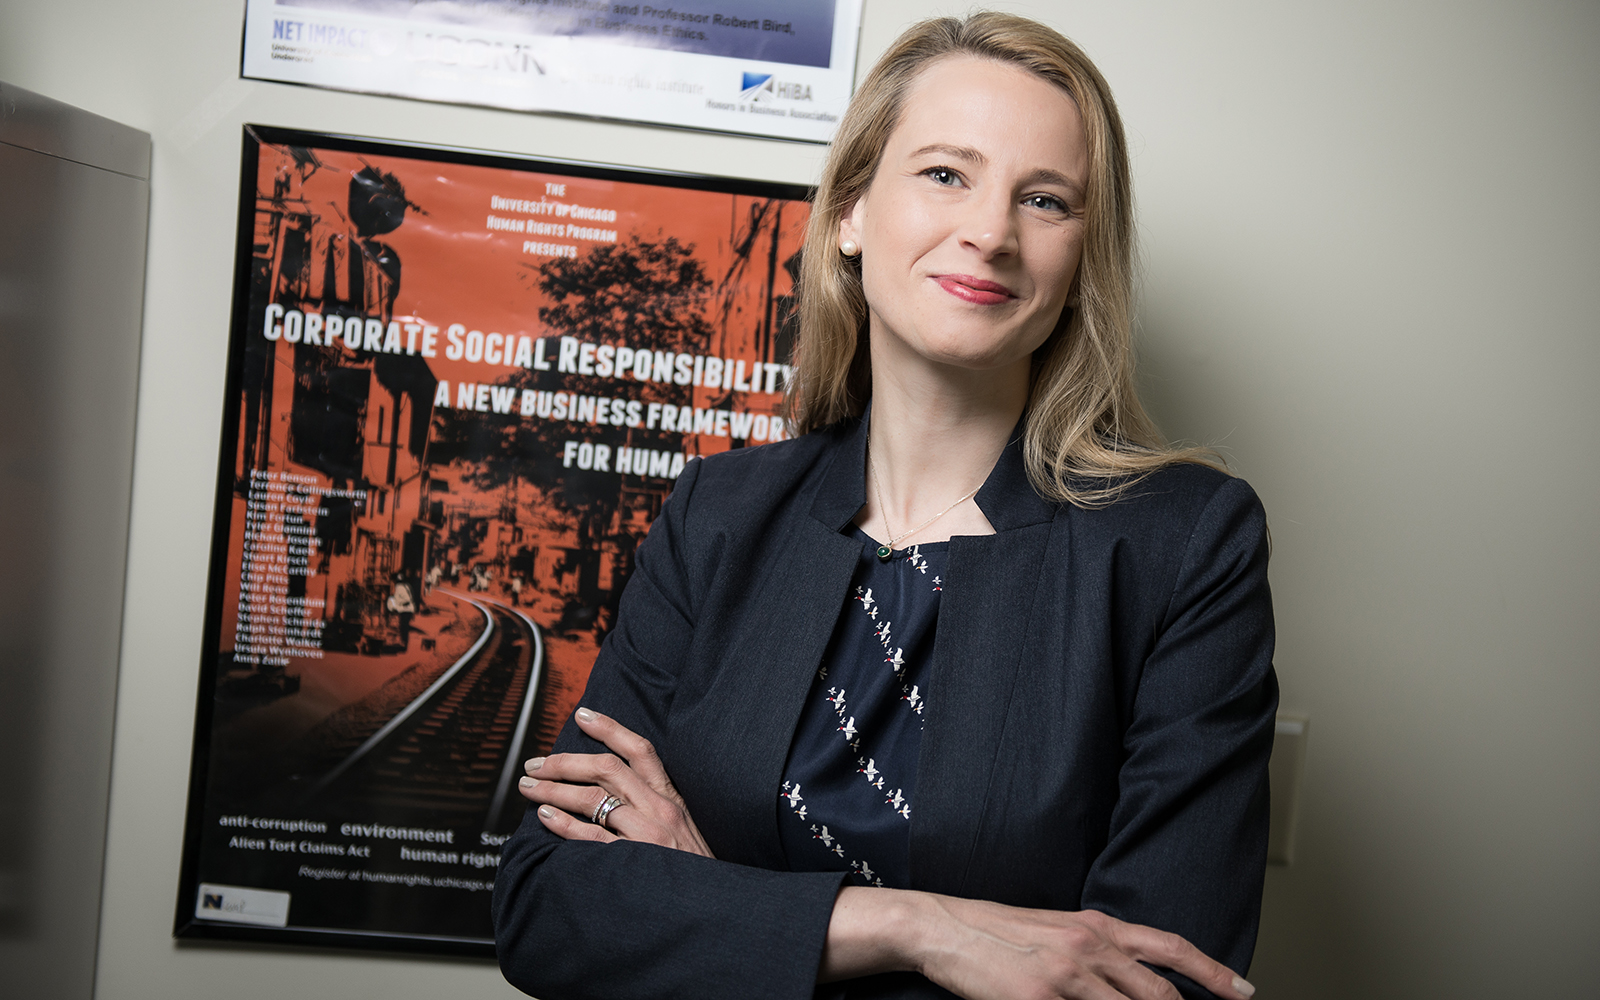 Caroline Kaeb is an Assistant Professor of Business Law and Human Rights at UConn School of Business, where she holds a joint appointment with the Human Rights Institute and a courtesy appointment with the School of Law. (Nathan Oldham/UConn School of Business)